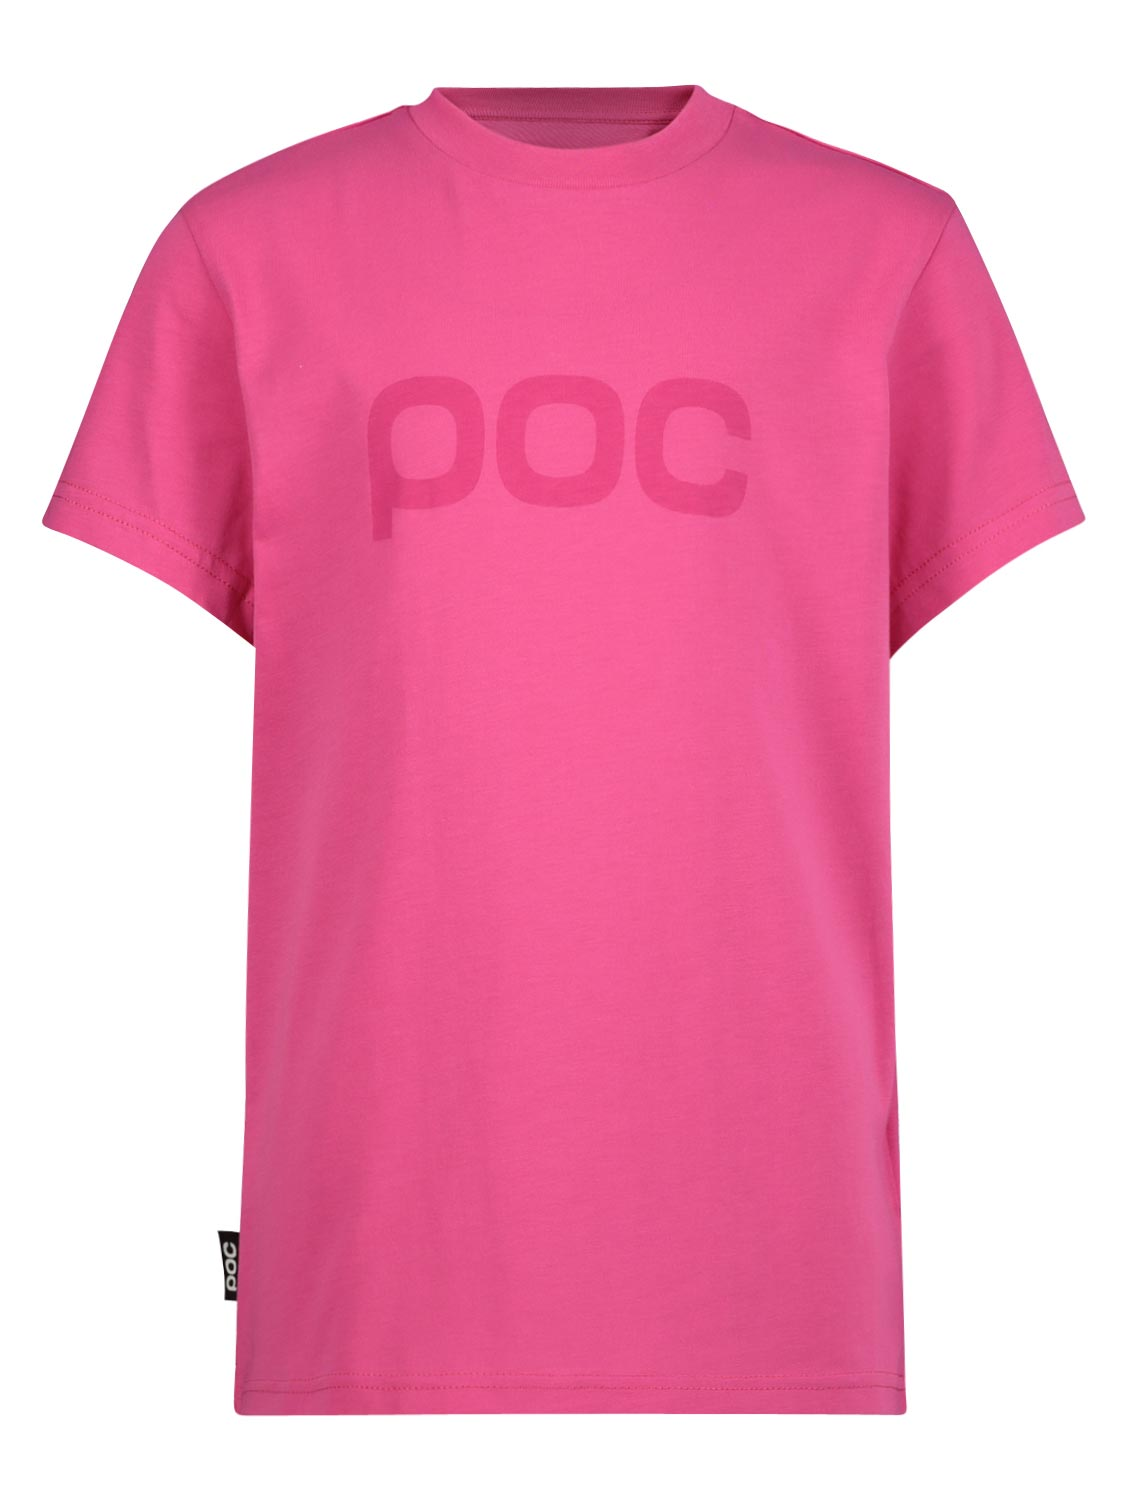 Poc Kids T-shirt For Girls In Pink